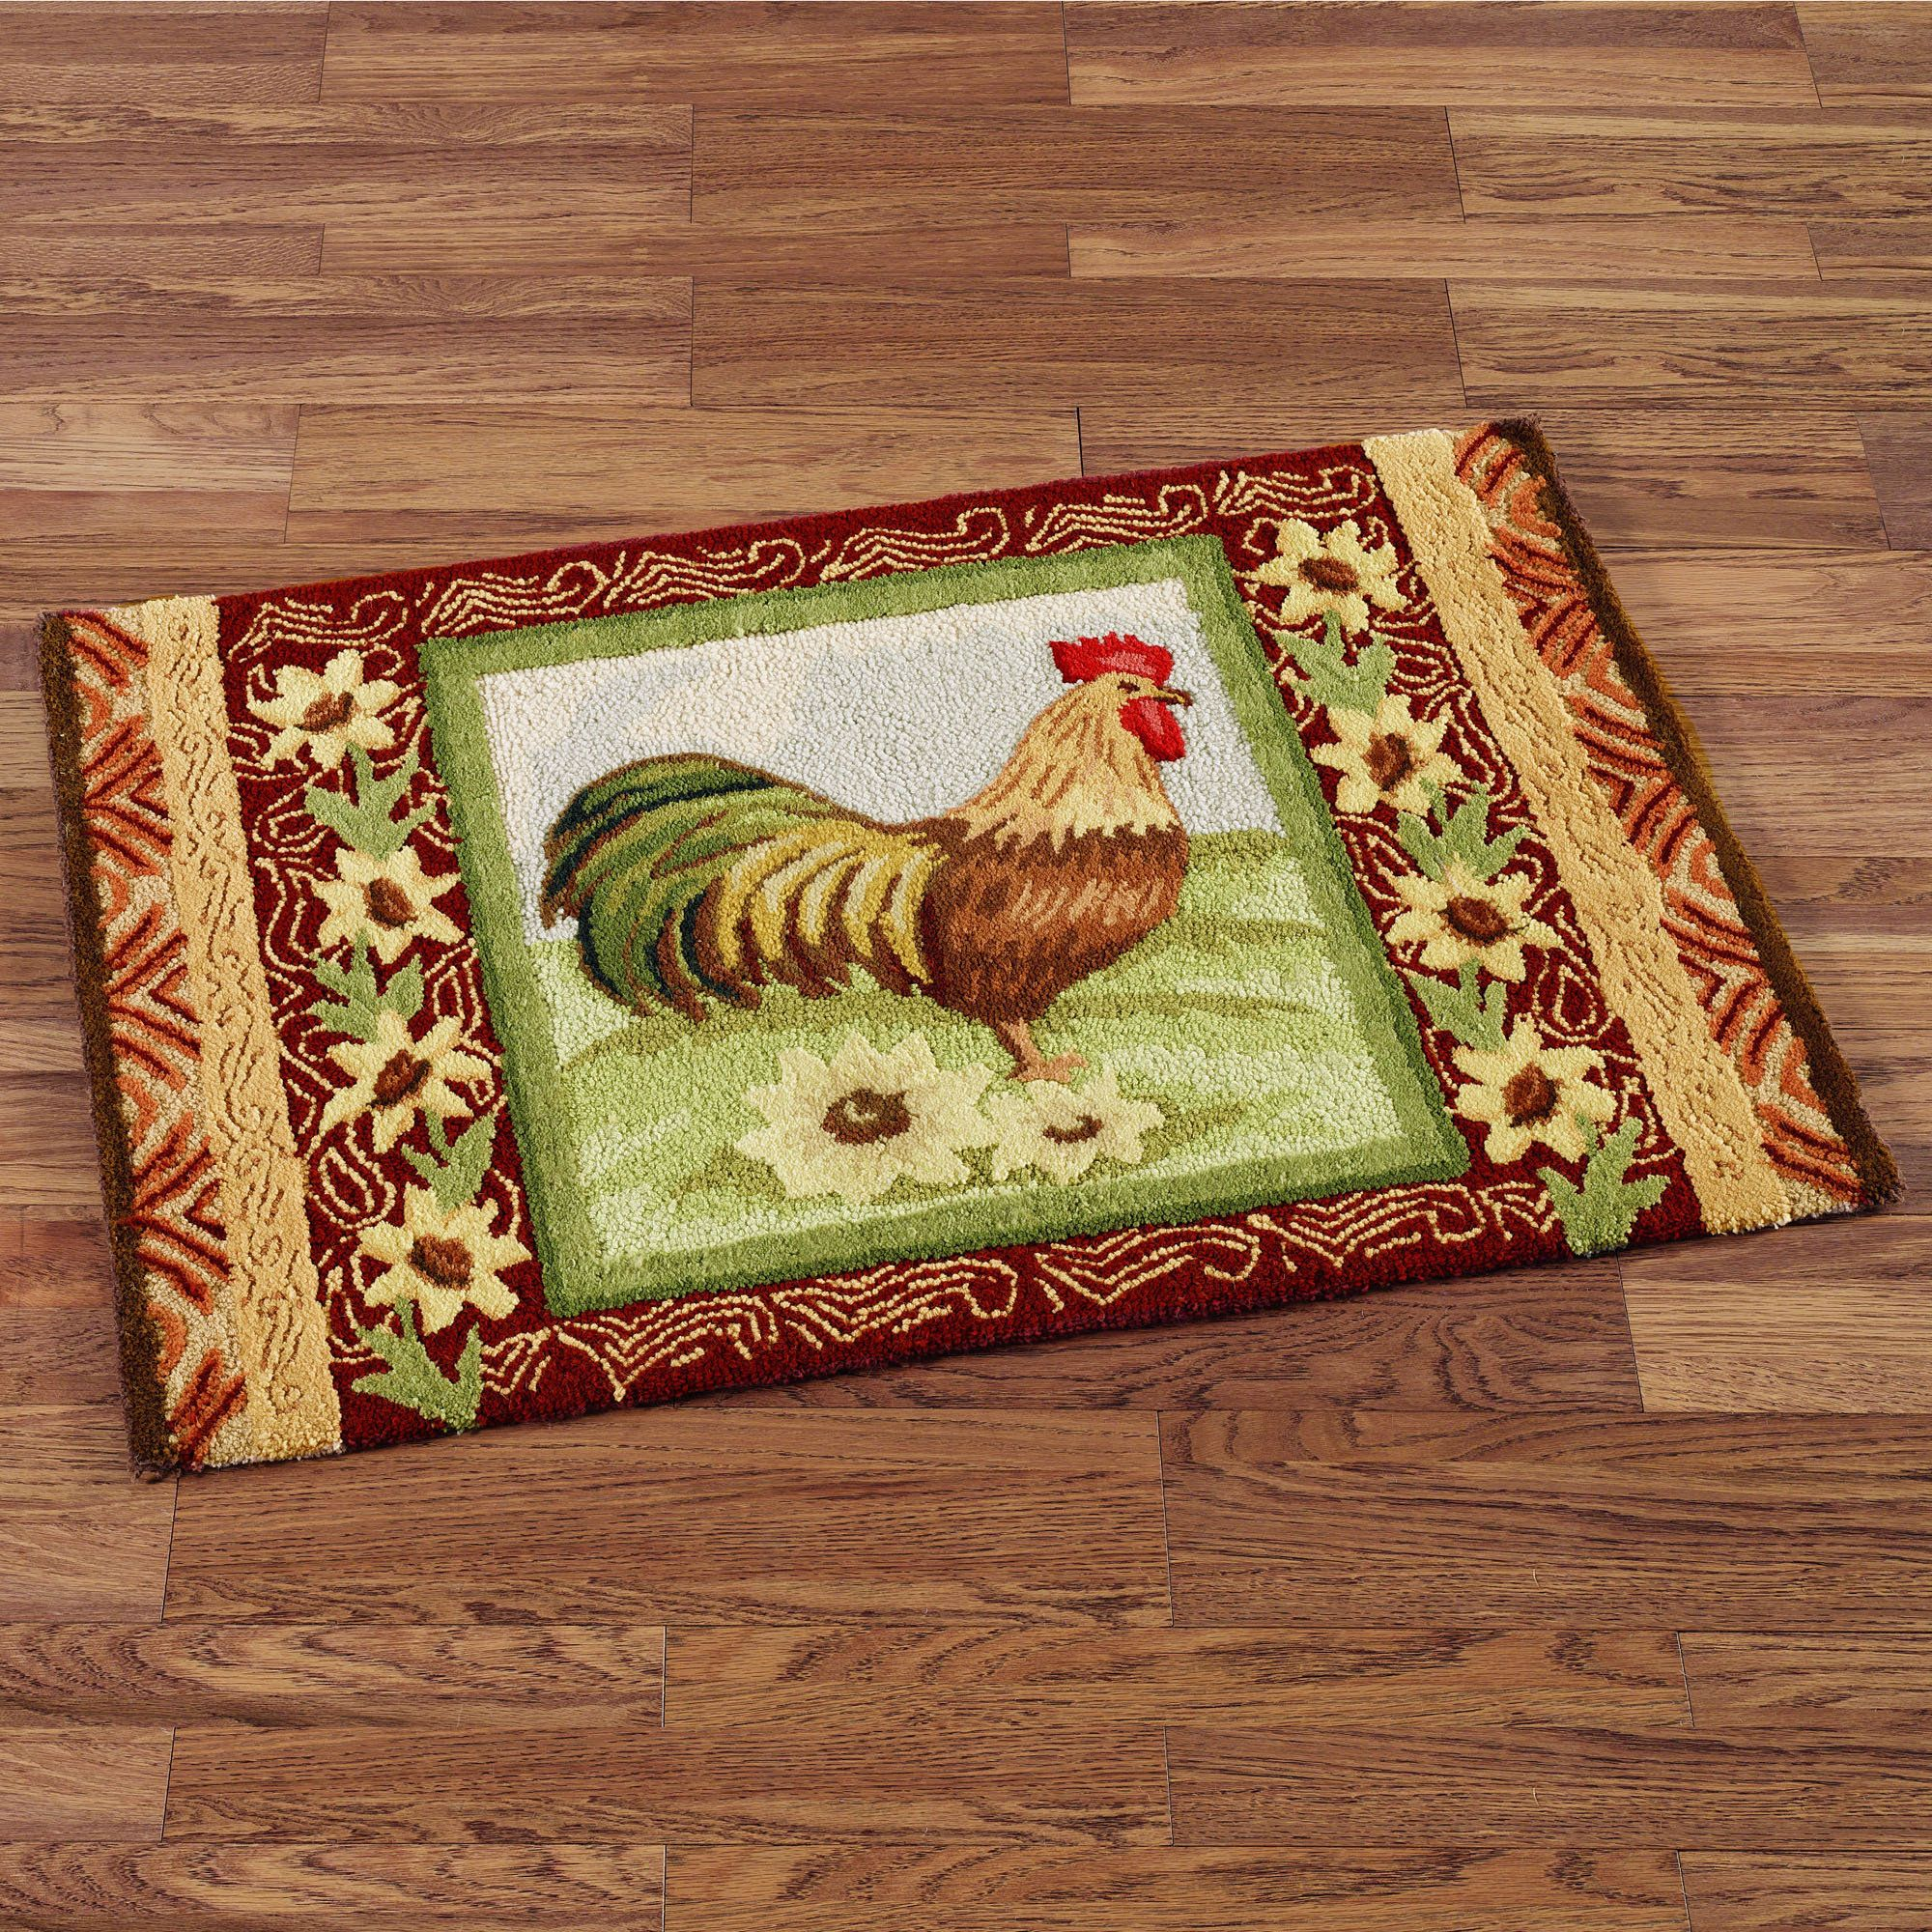 Statuette Of Rooster Kitchen Rugs Creating A Country Nuance Decor